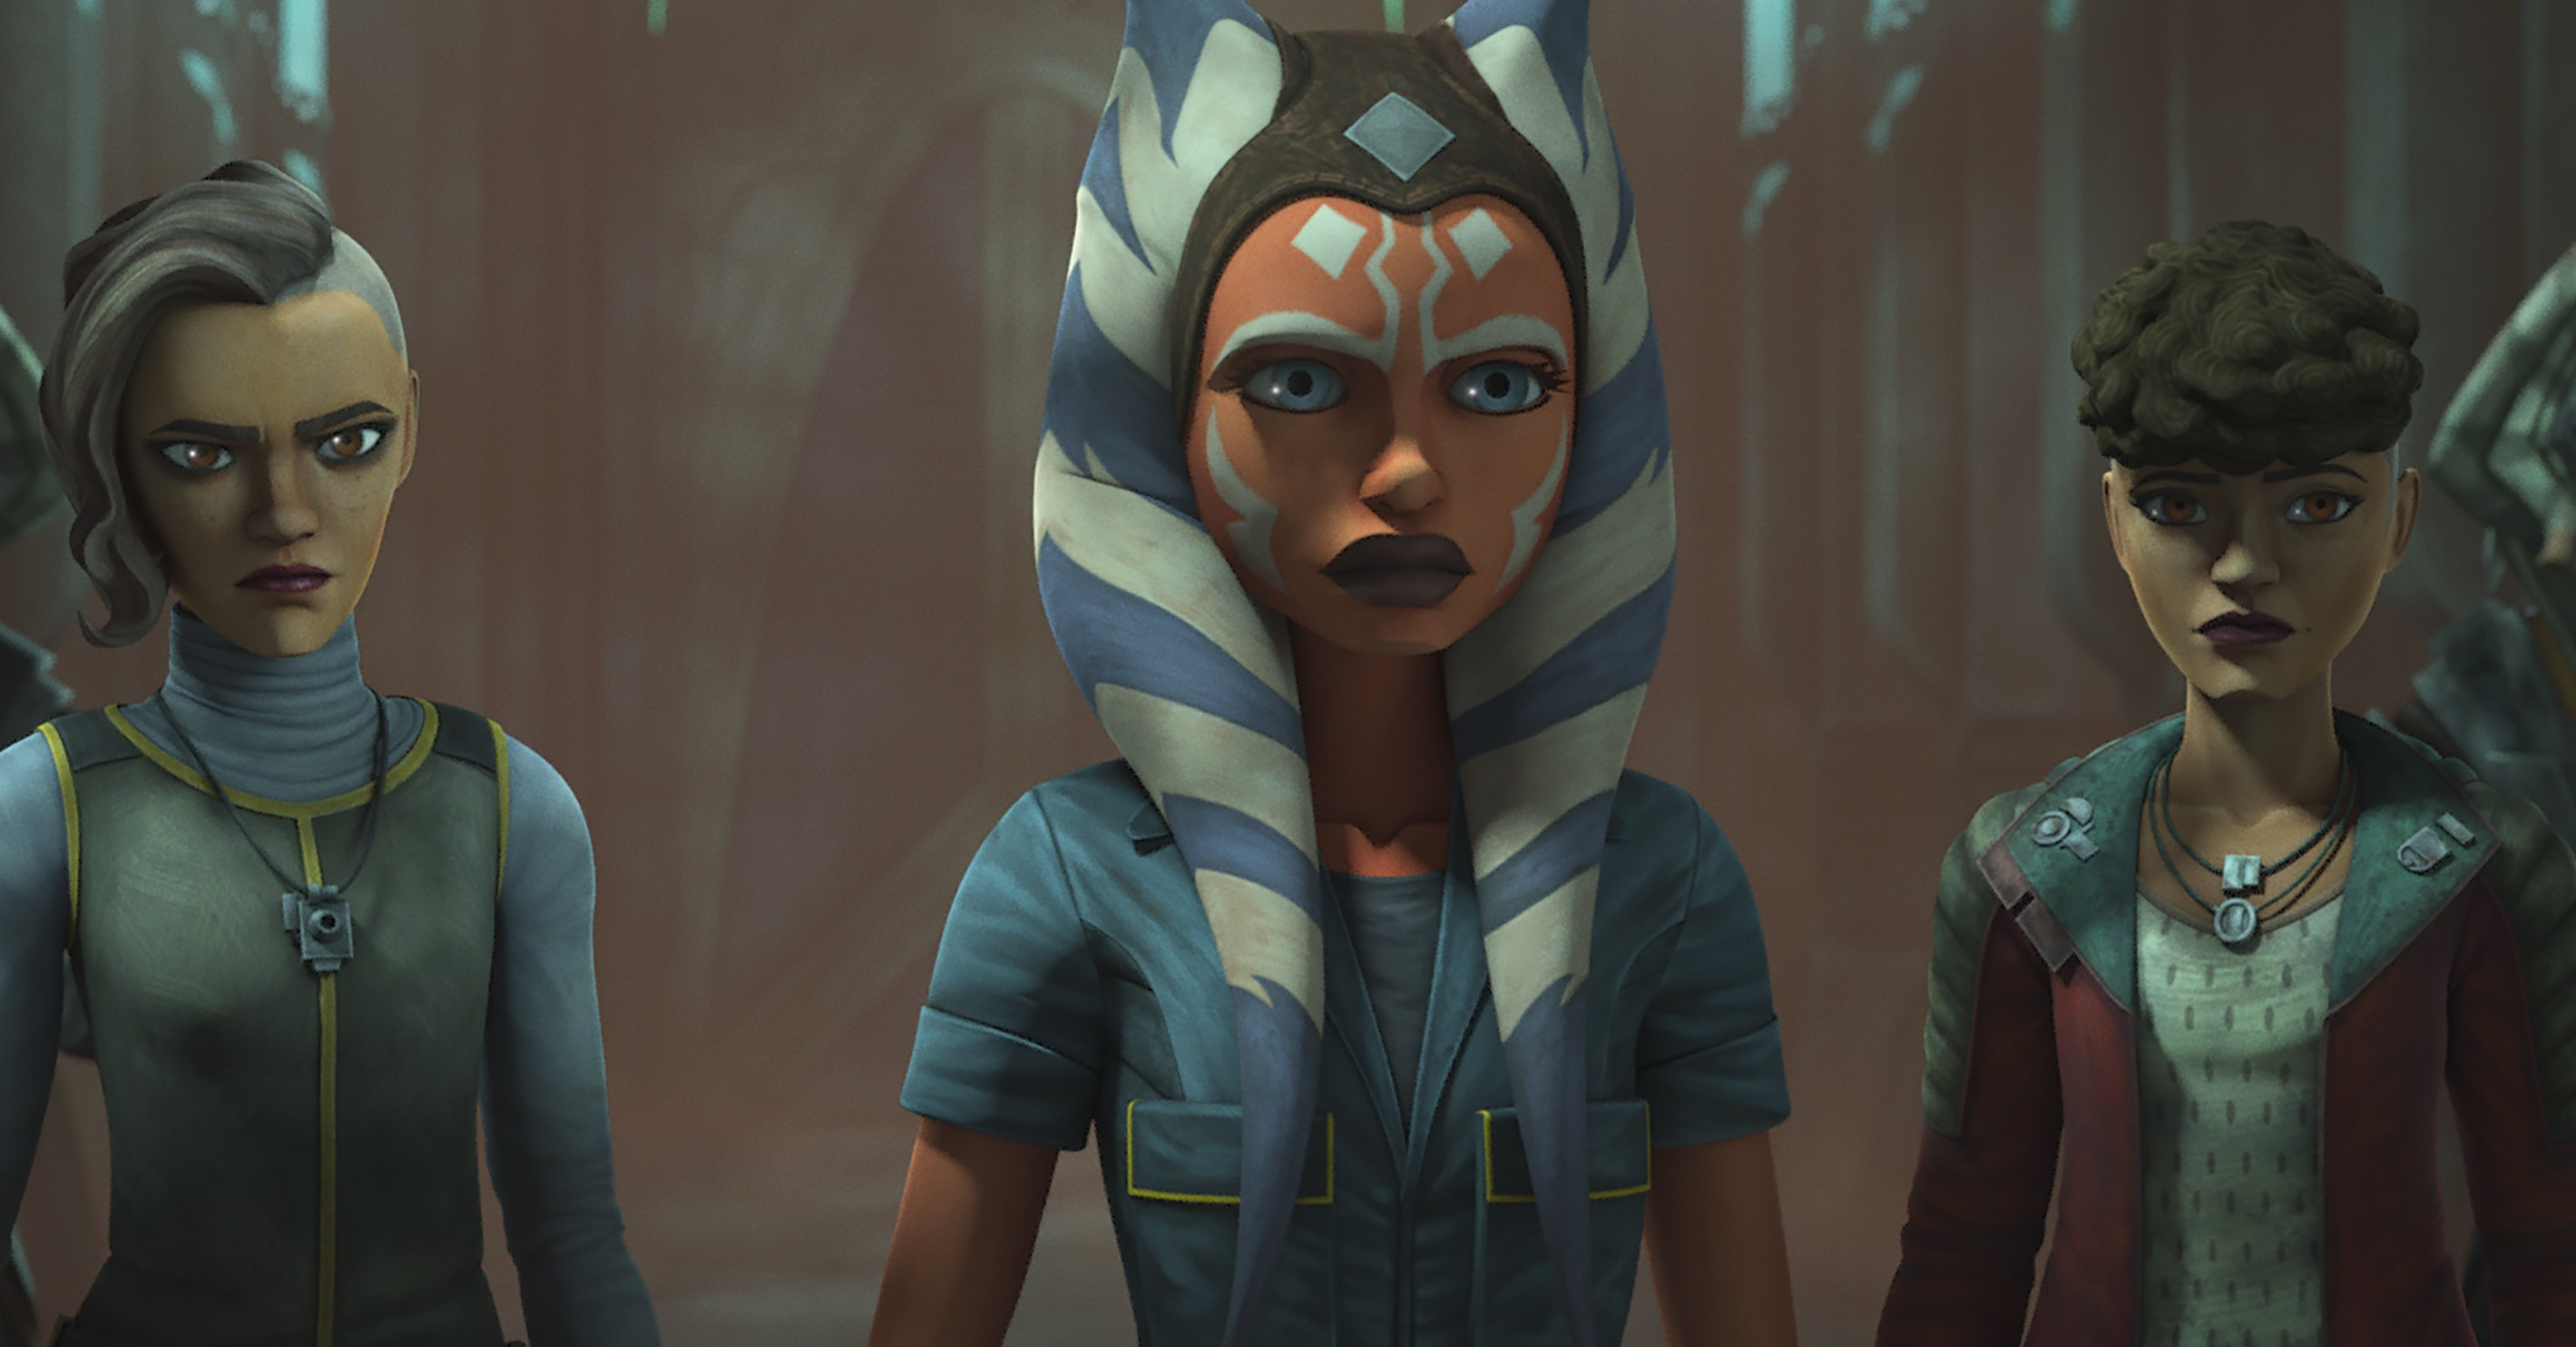 Star Wars: The Clone Wars season 7: Release date, plot and